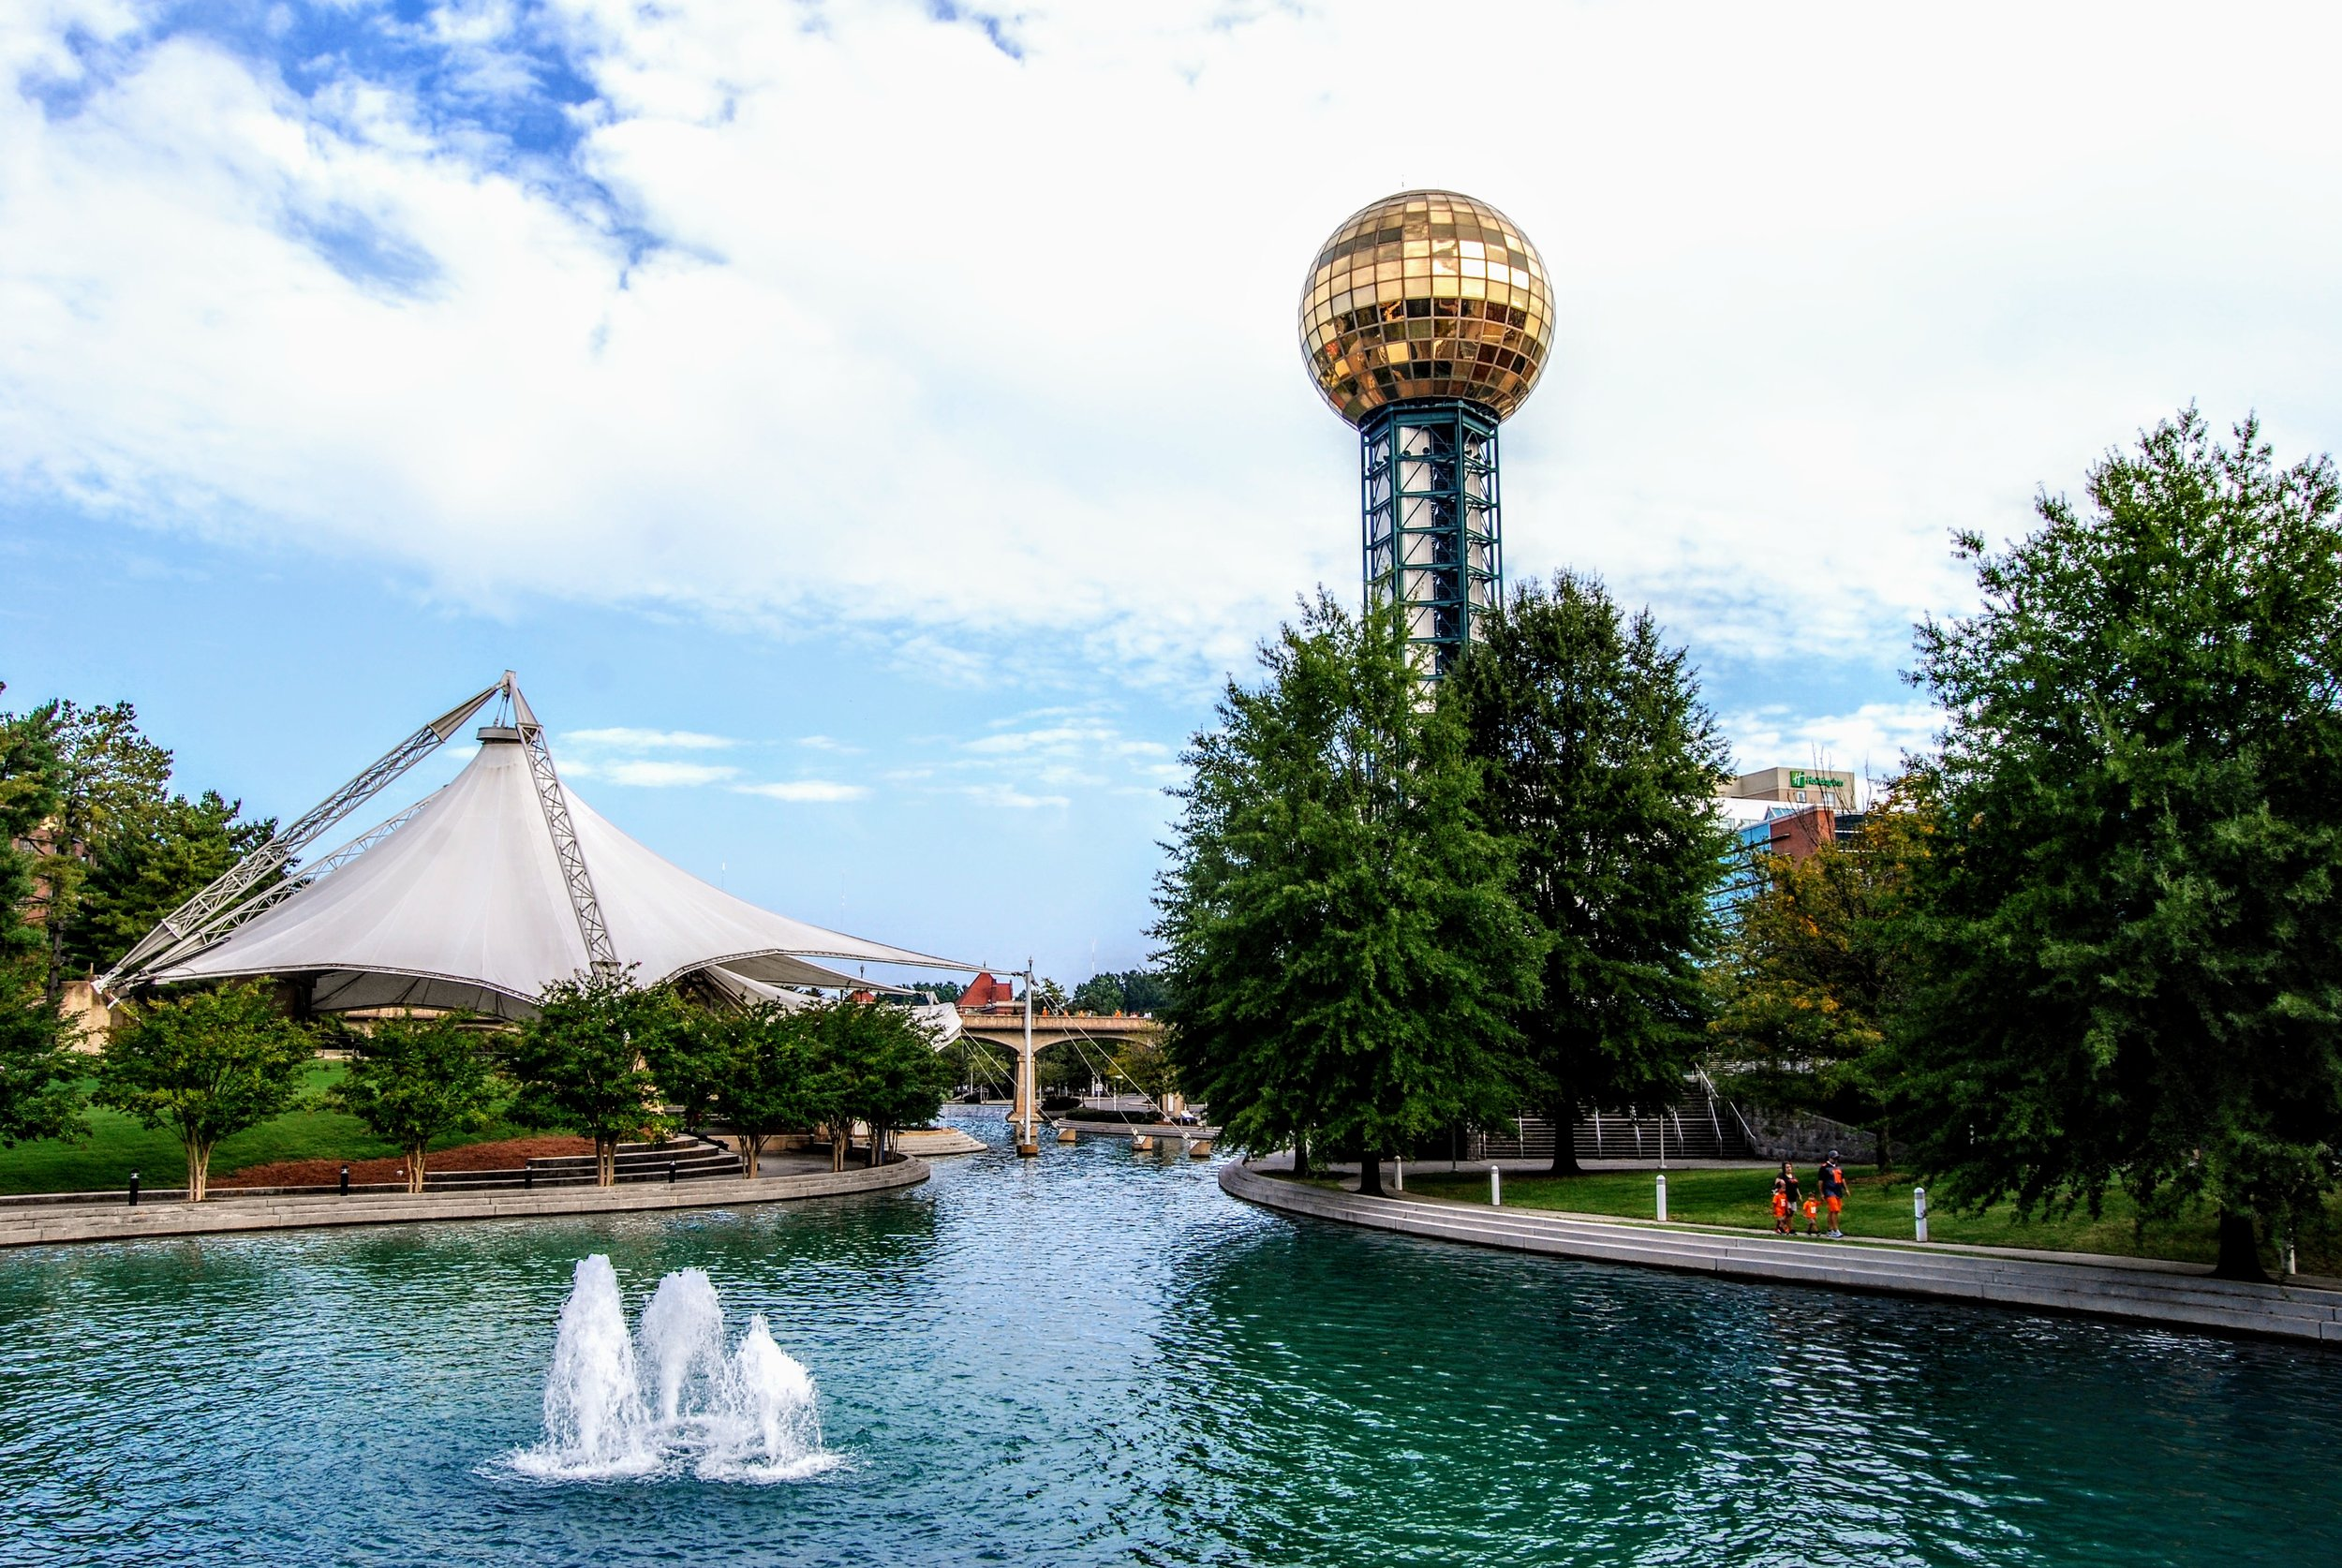 Knoxville World's Fair Park and Sunsphere